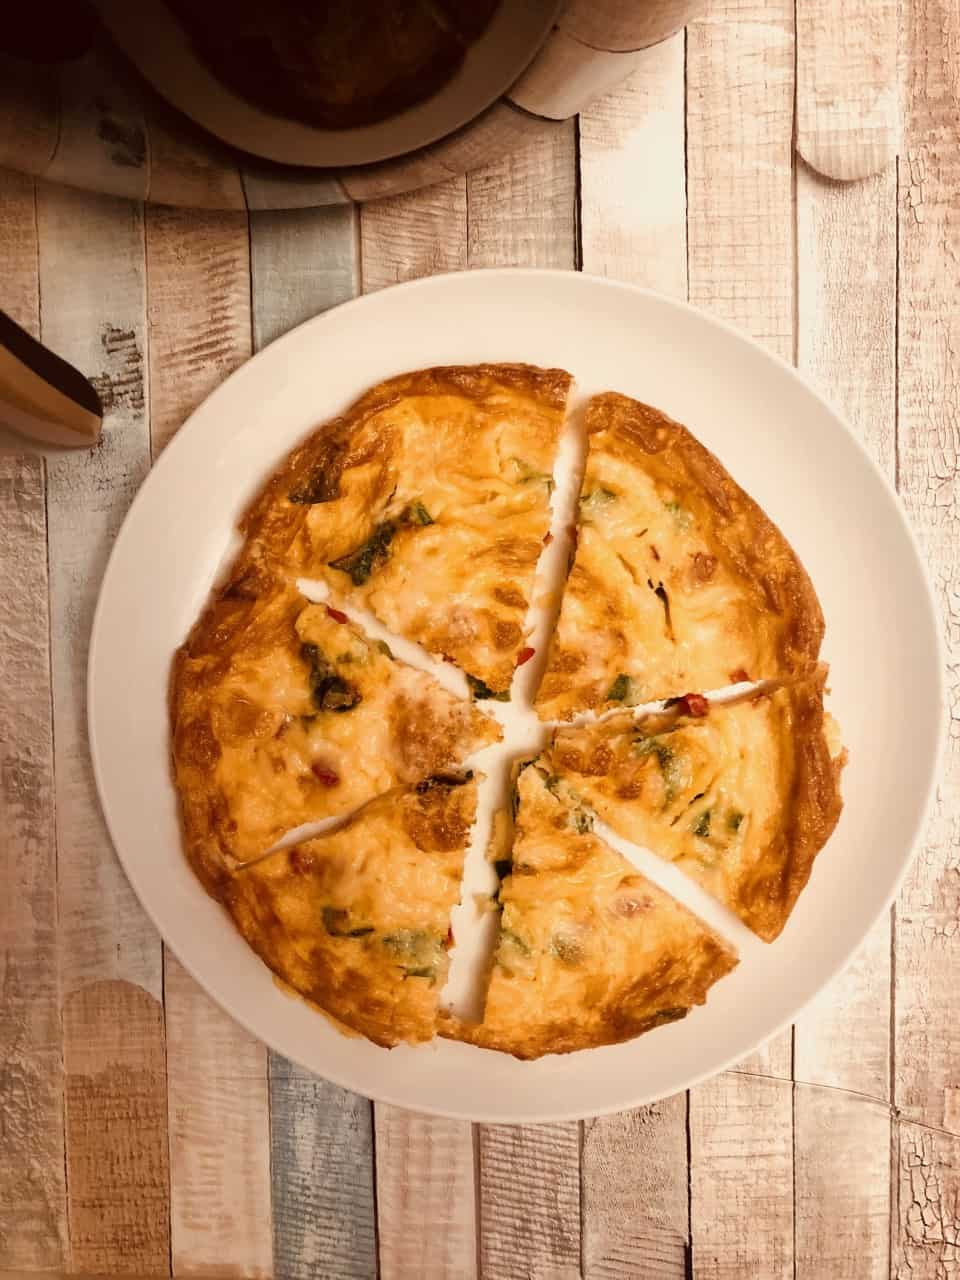 frittata on a plate by an air fryer